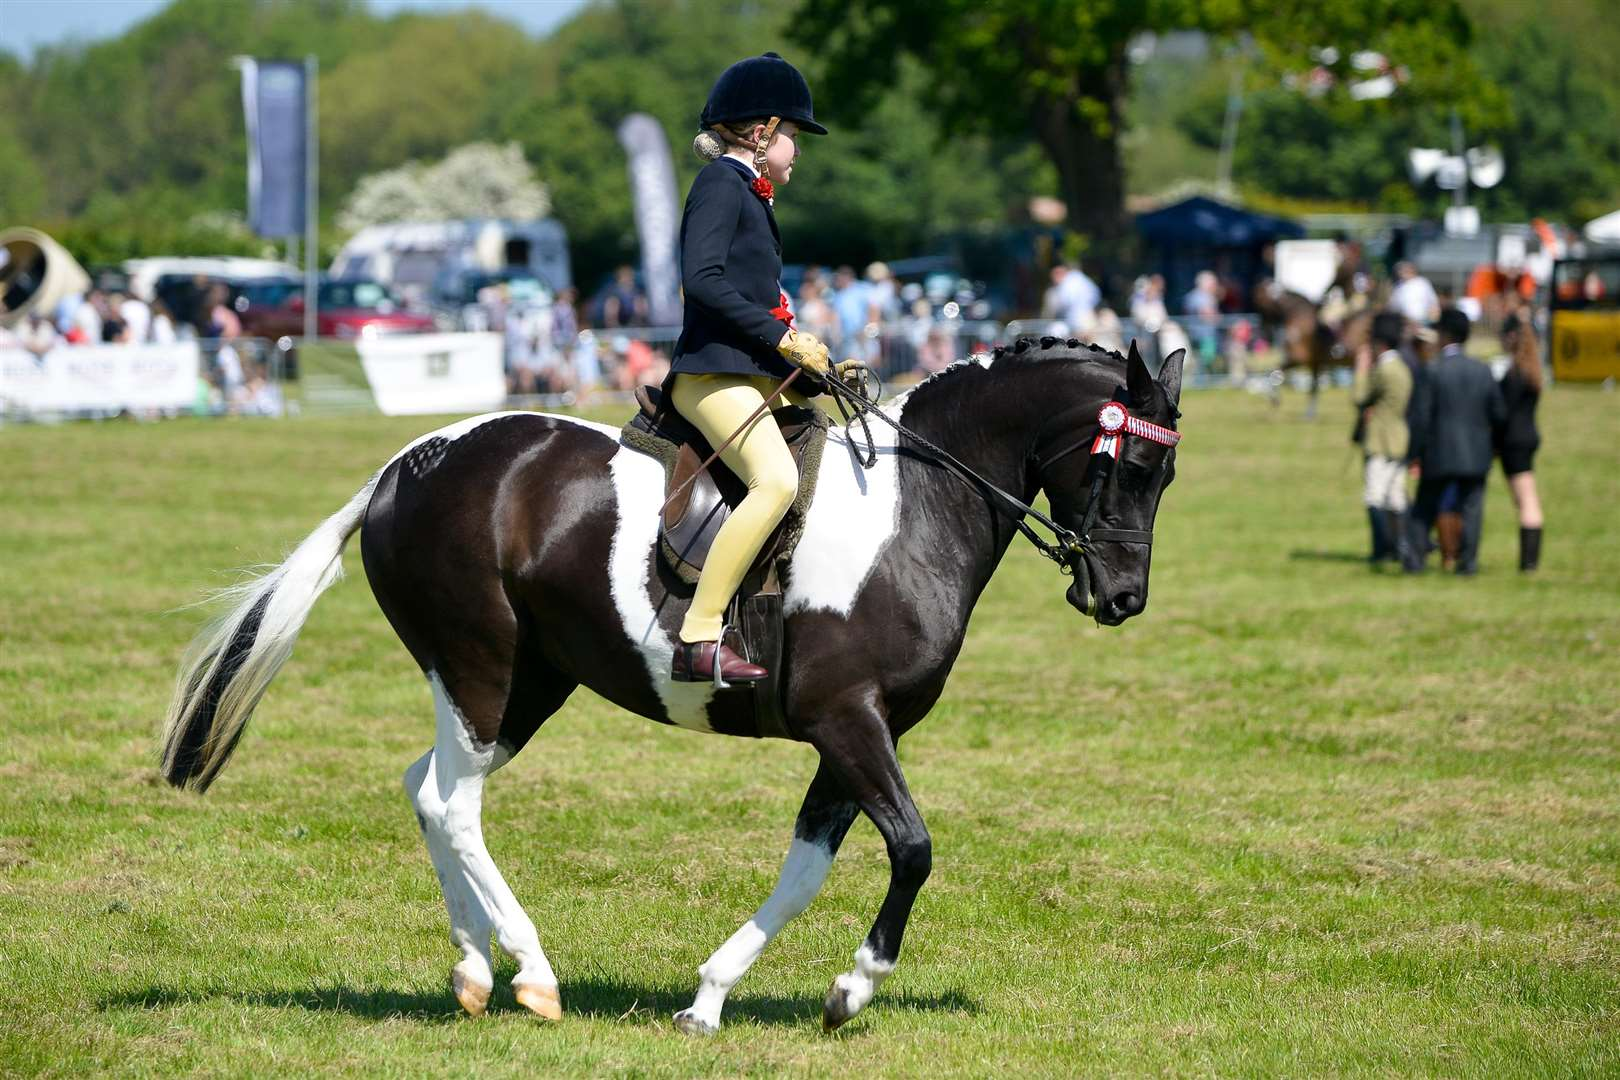 The Annual Hadleigh Show. A entrant in the Dressage Show. (2087989)